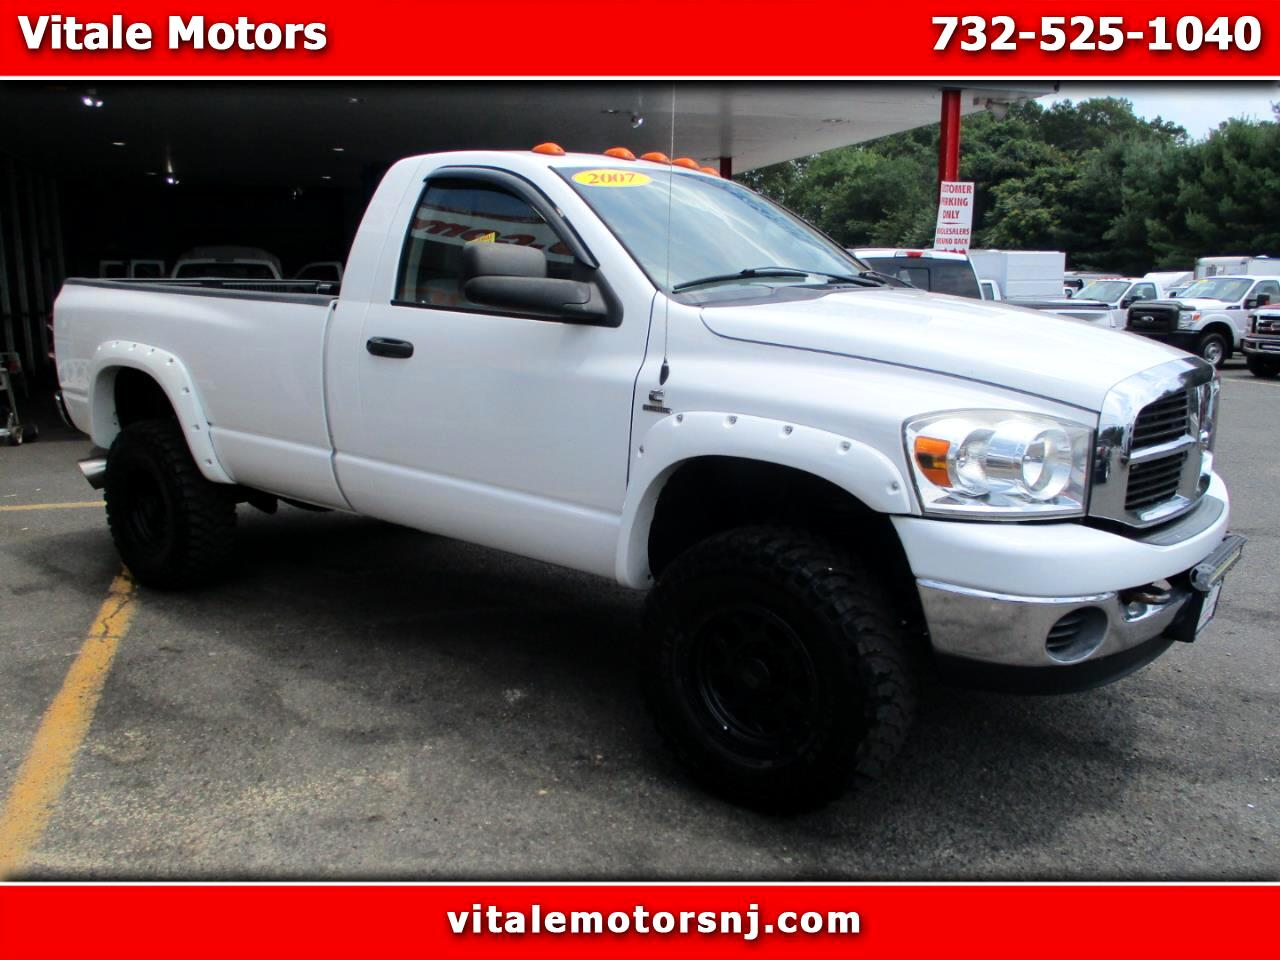 2007 Dodge Ram 2500 DIESEL 5.9L ENGINE ** MANUAL TRANSMISSION